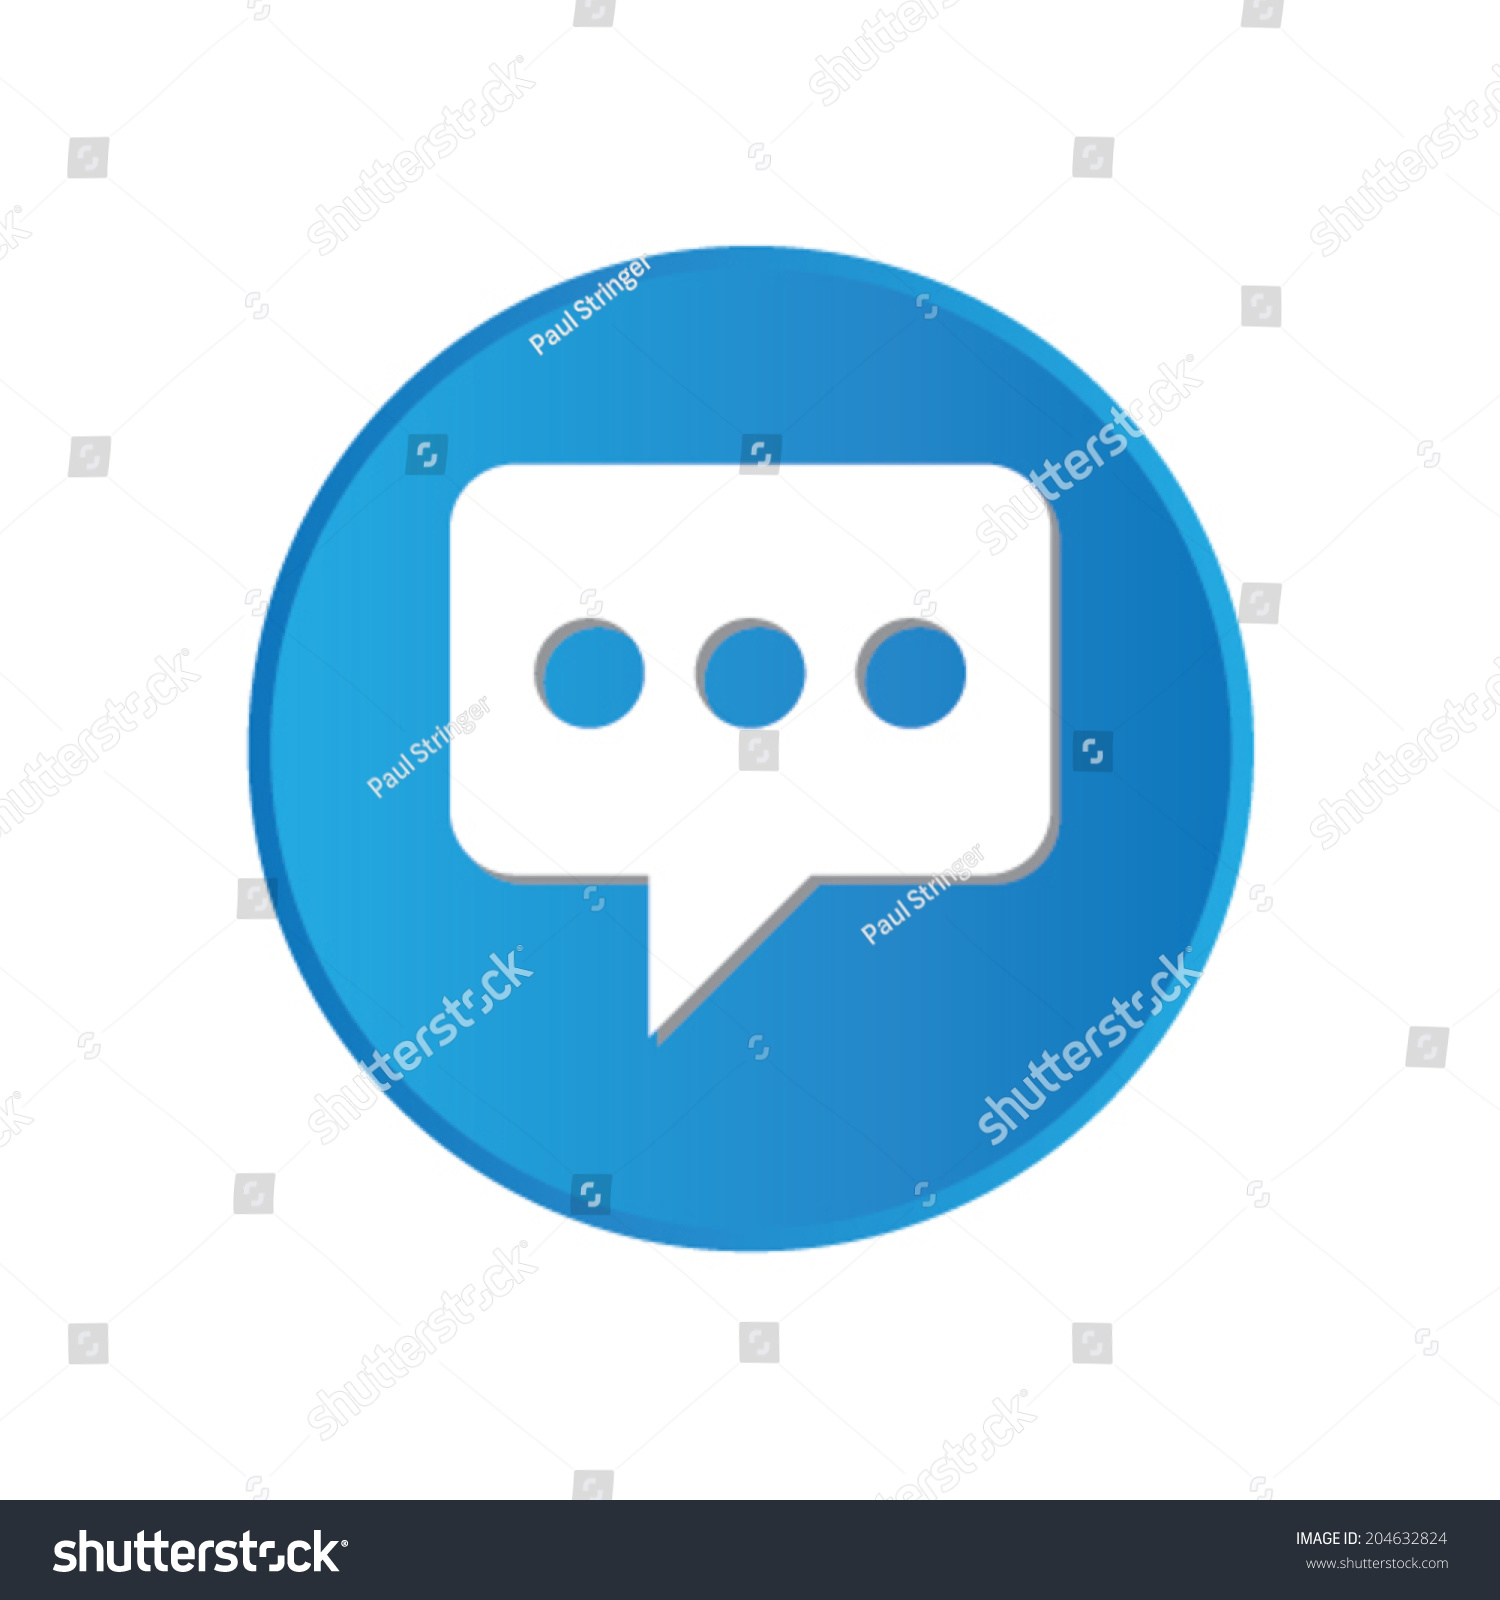 Colorful Square Buttons Website App Speech Stock Vector